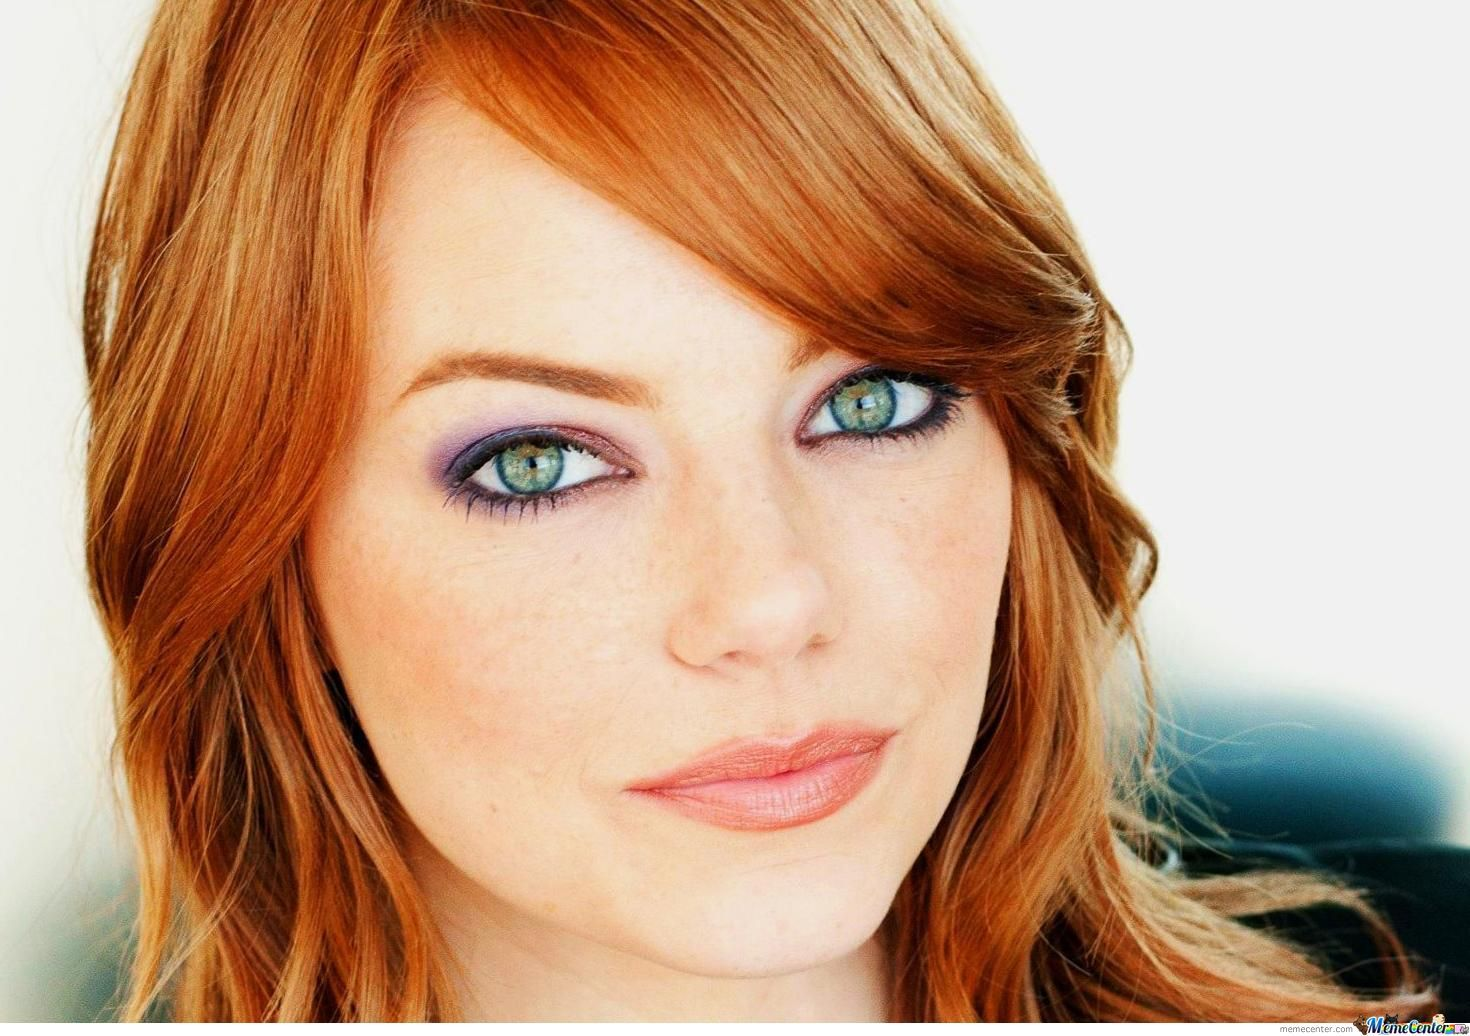 Emma Stone Looks Hotter As A Red Head By Leoramen - Meme Center-9491